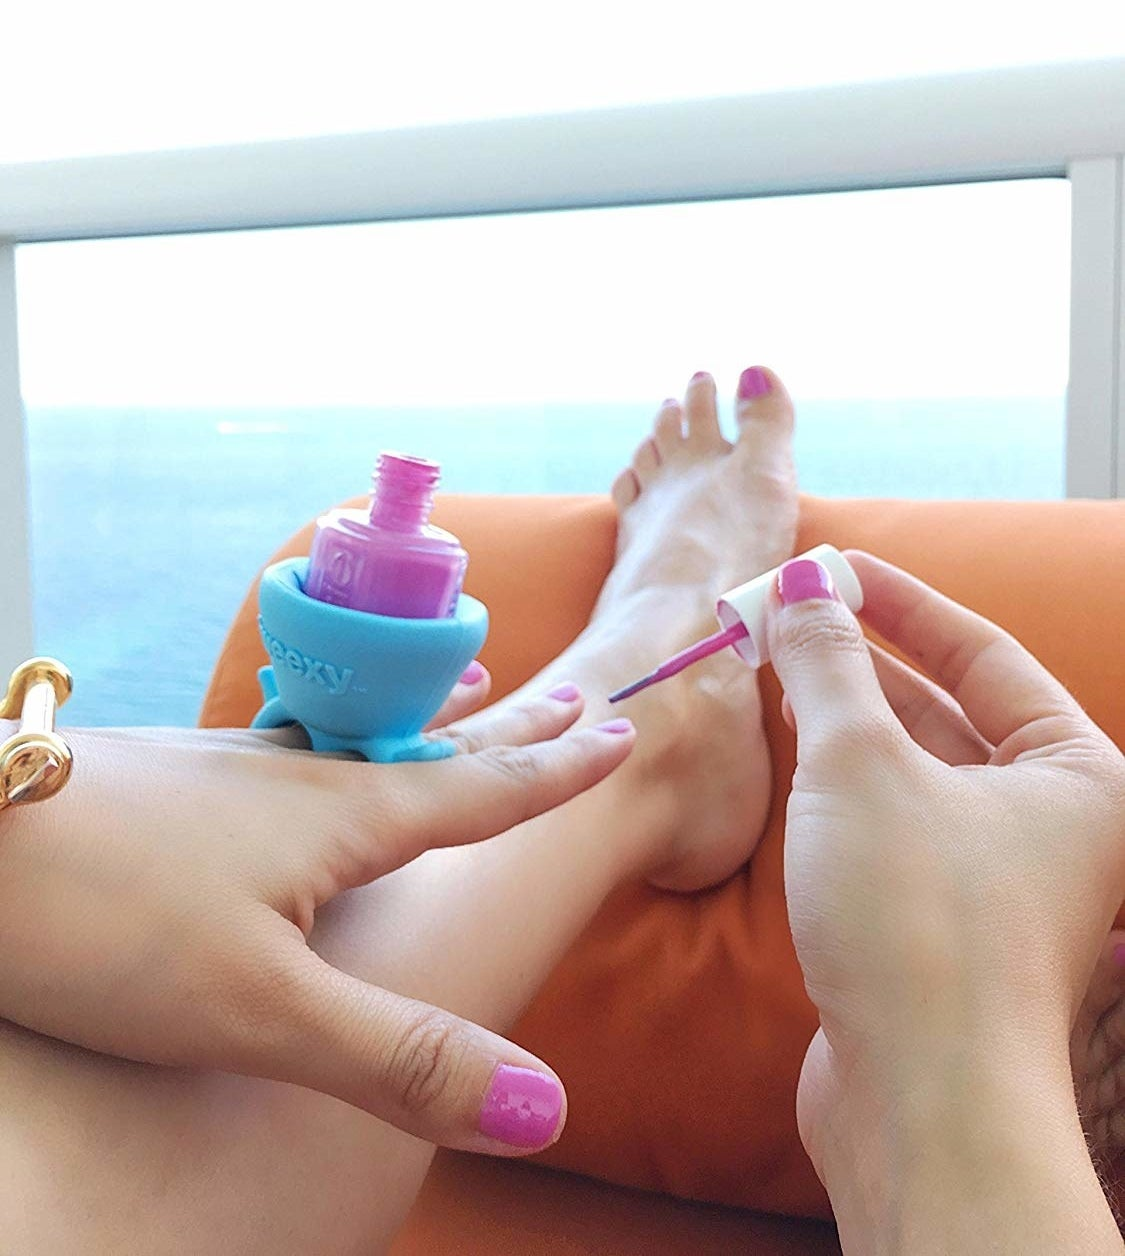 model paints nails while wearing a ring with nail polish bottle in it